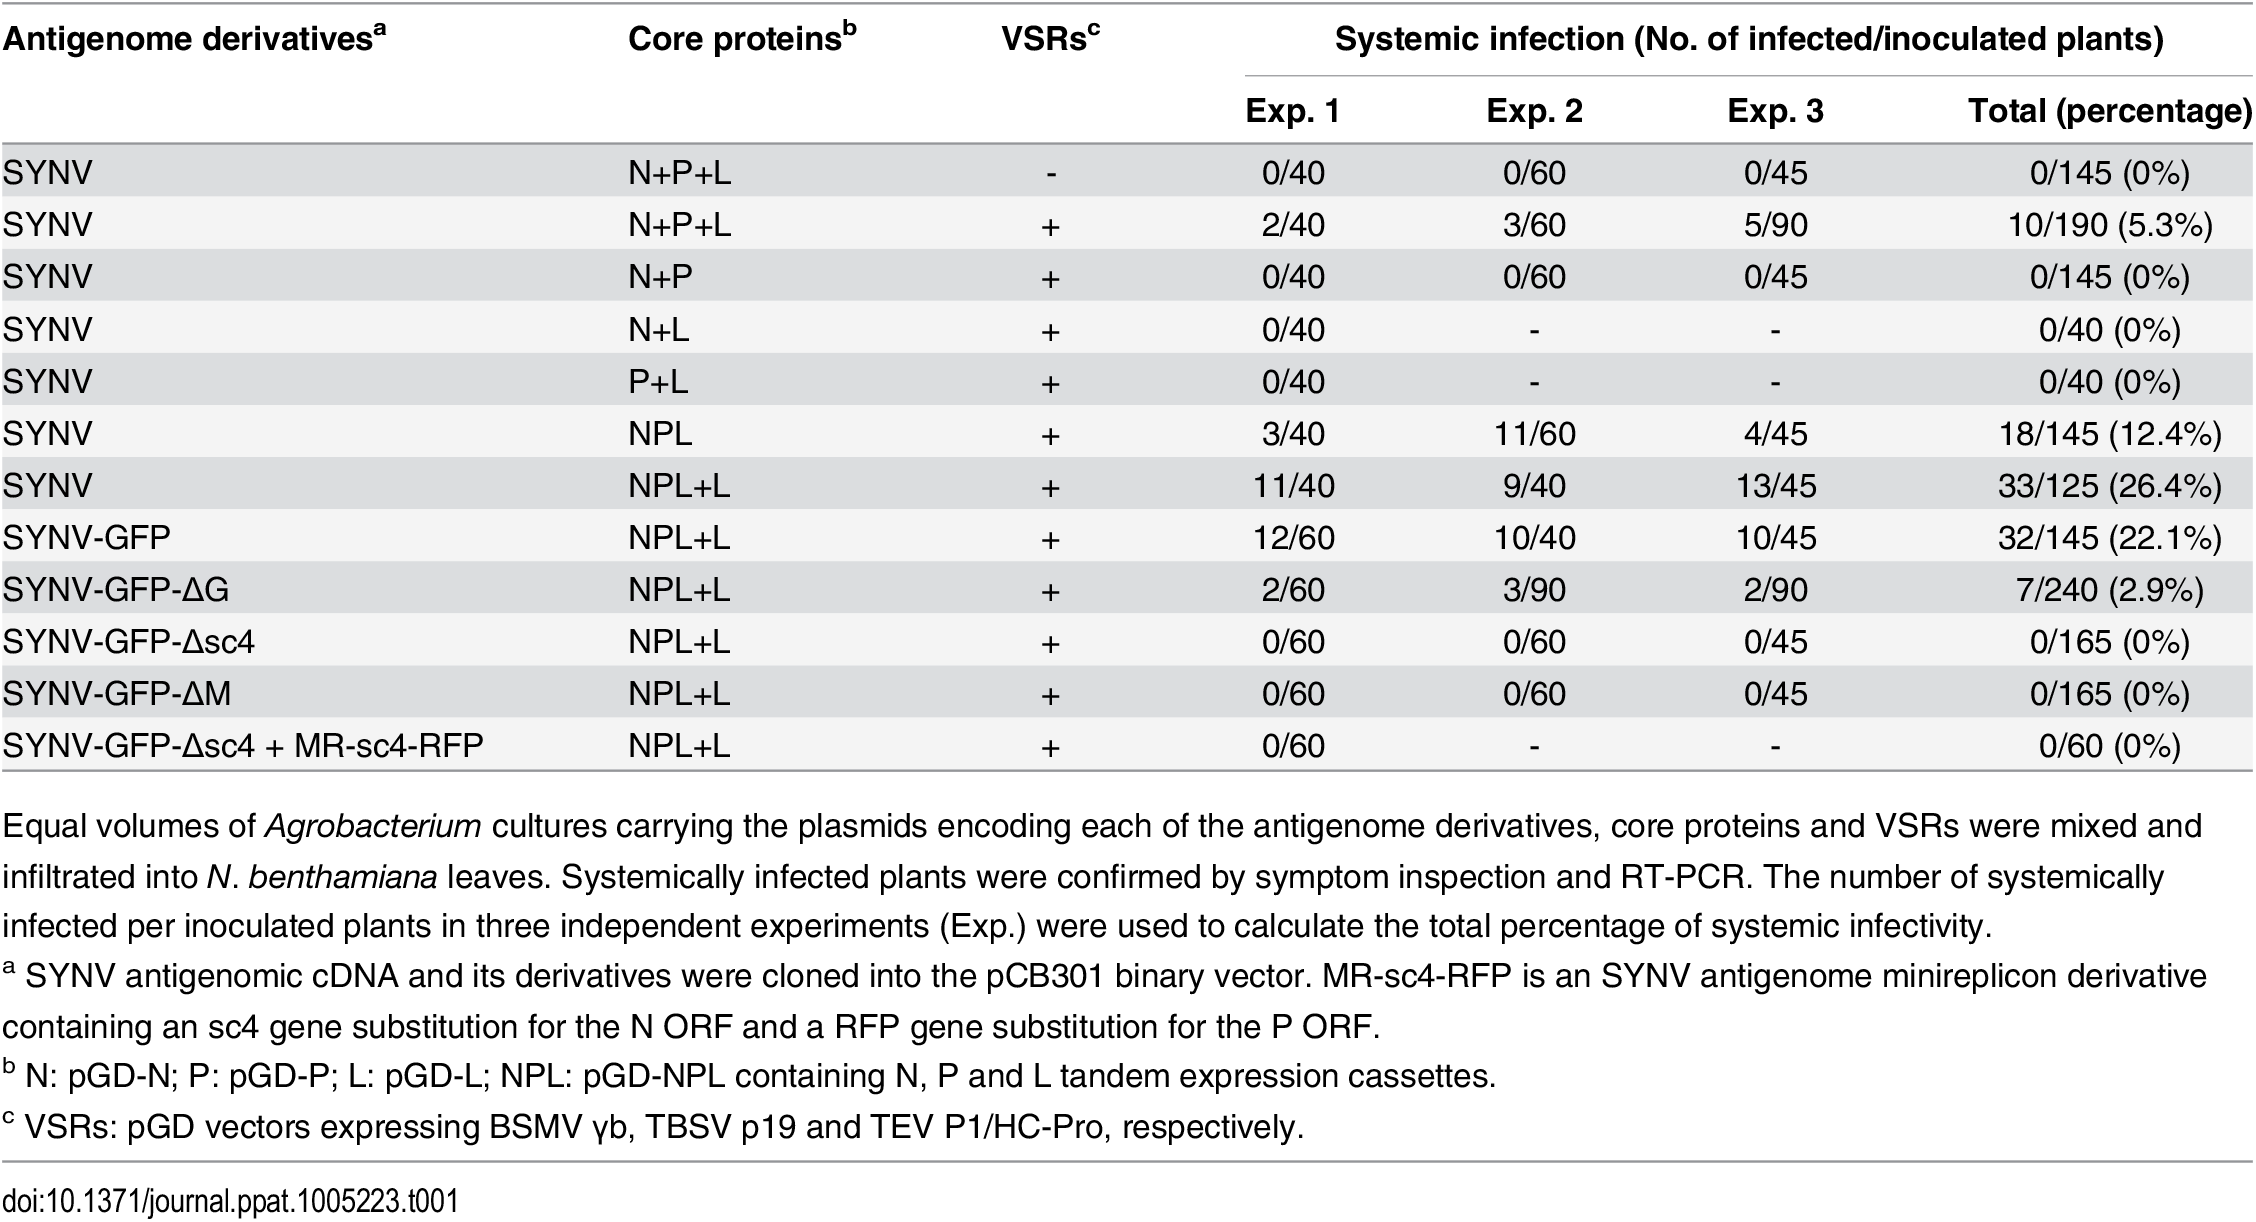 Systemic infection rates of SYNV antigenomic cDNA and derivatives in <i>Nicotiana benthamiana</i> supported by various combinations of core proteins and viral suppressors of RNA silencing (VSRs).